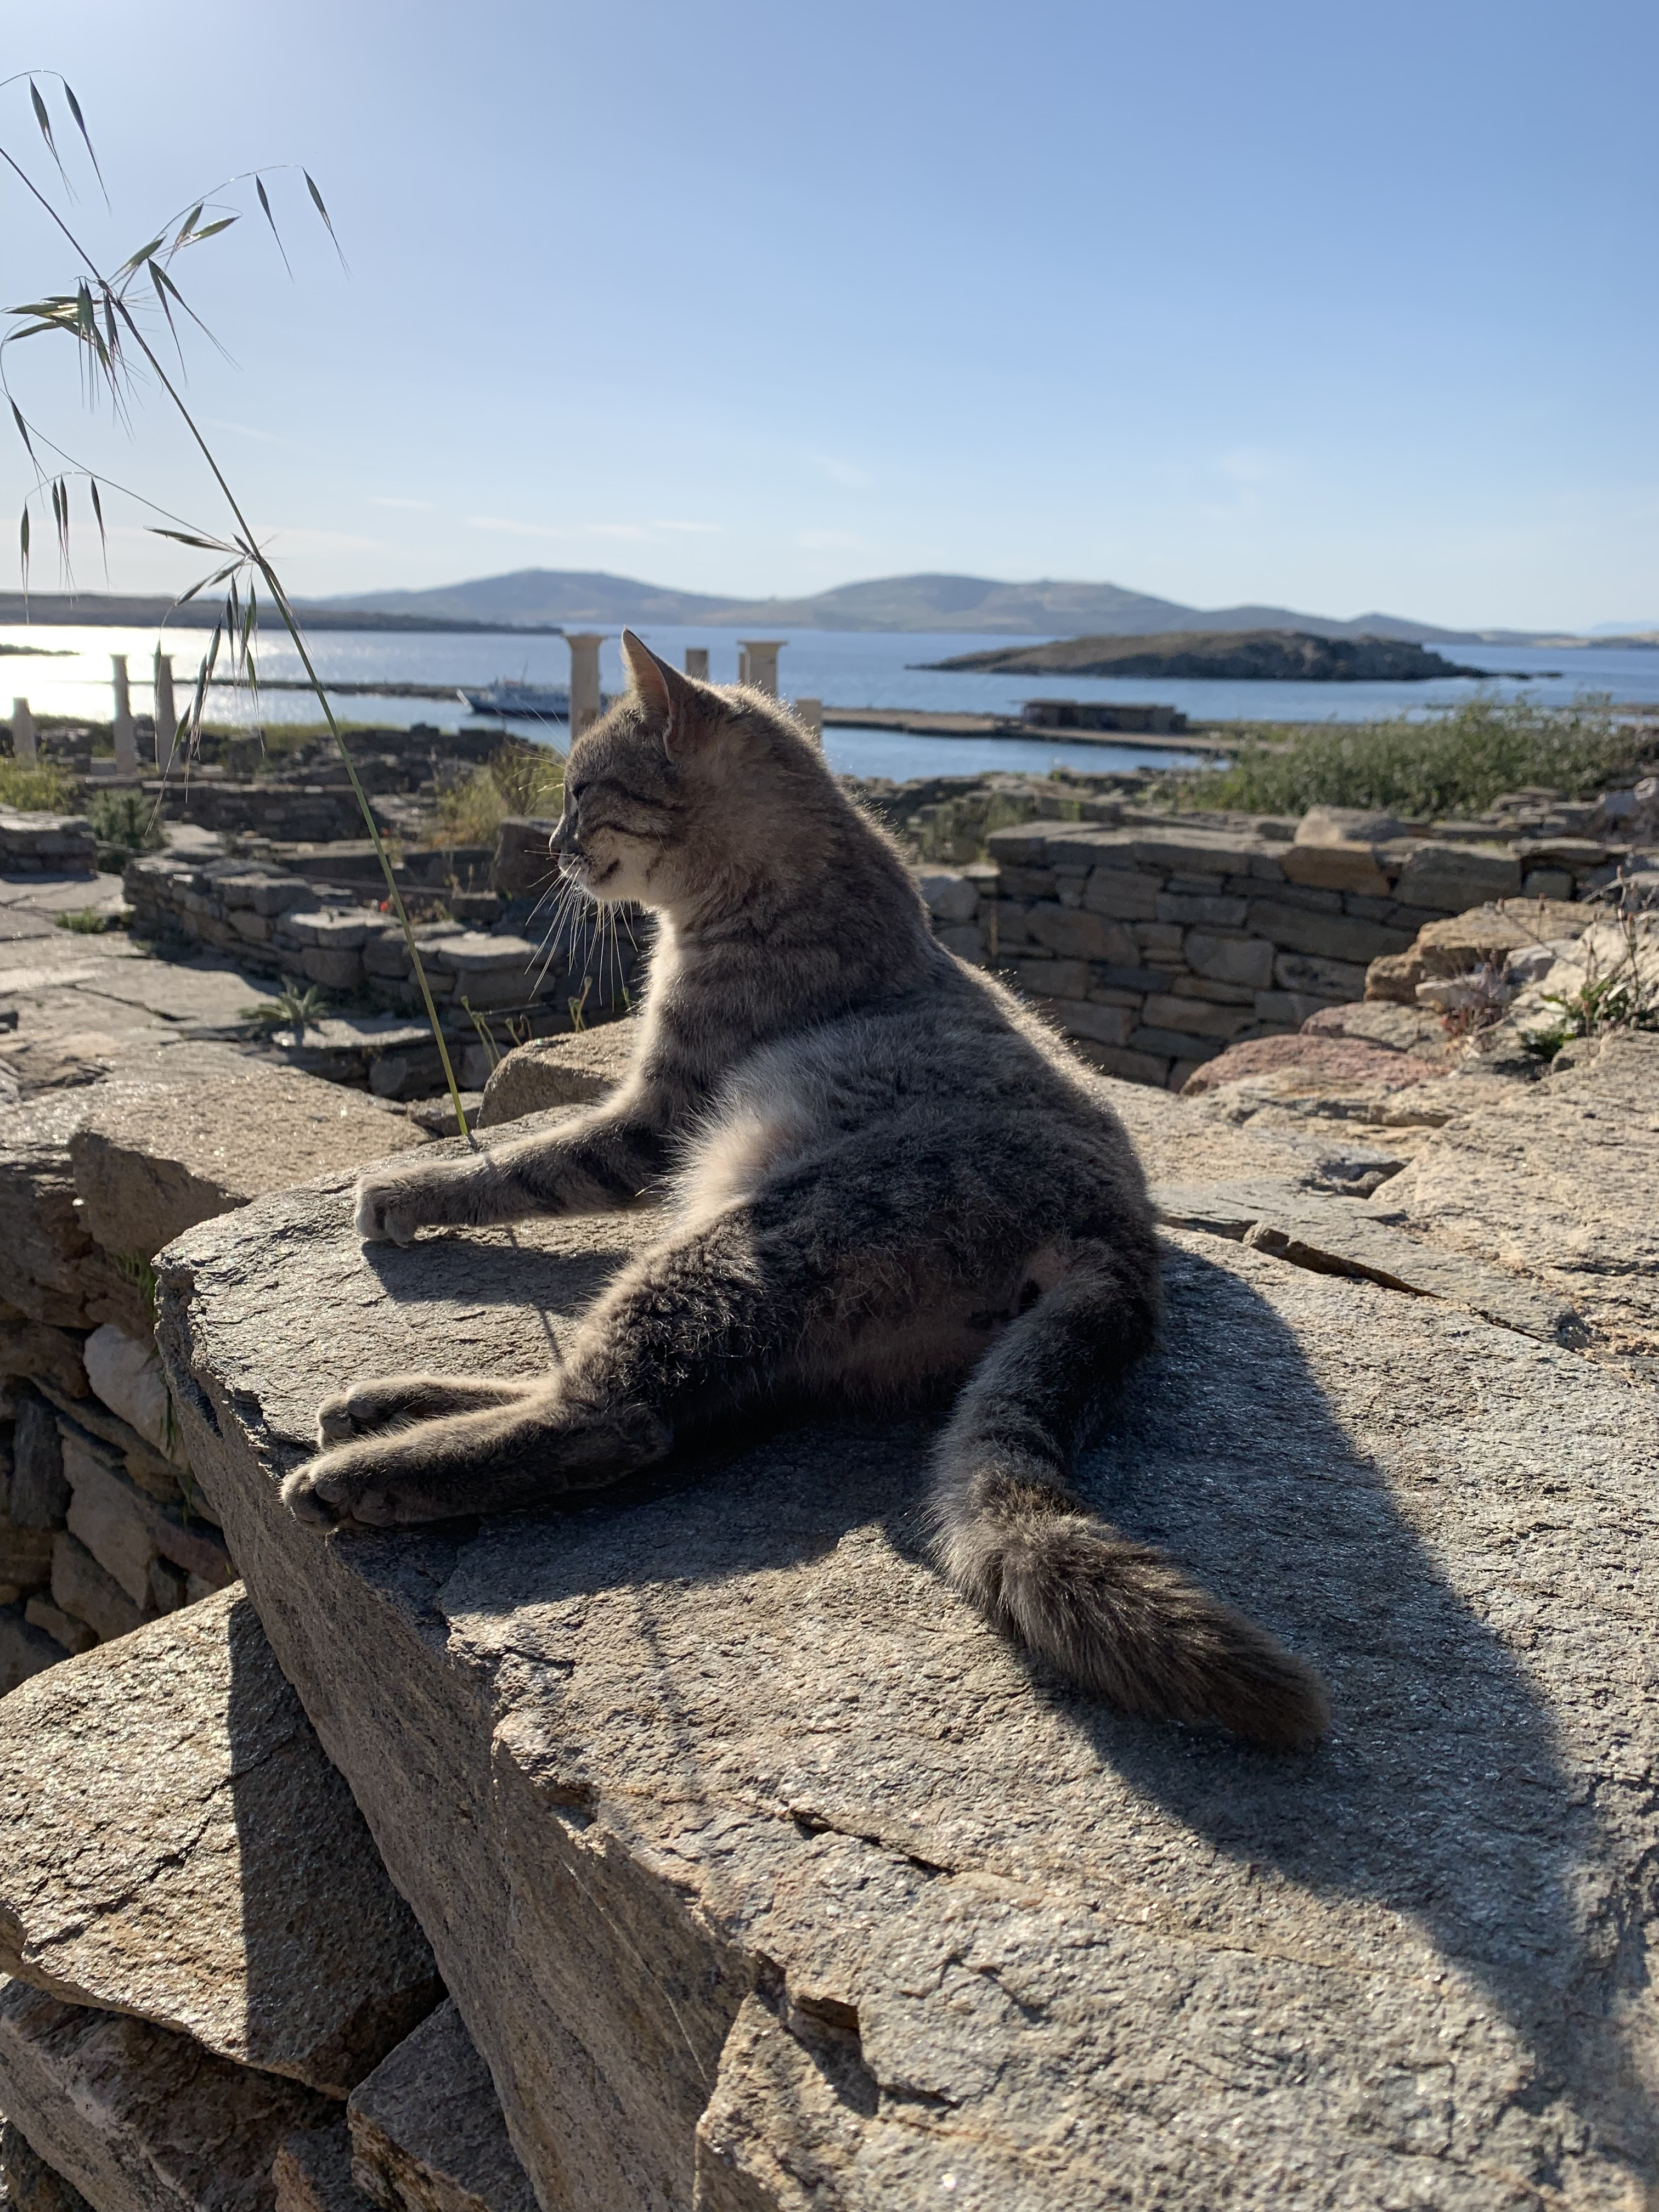 Greek island of Delos with a cat in the ancient ruins